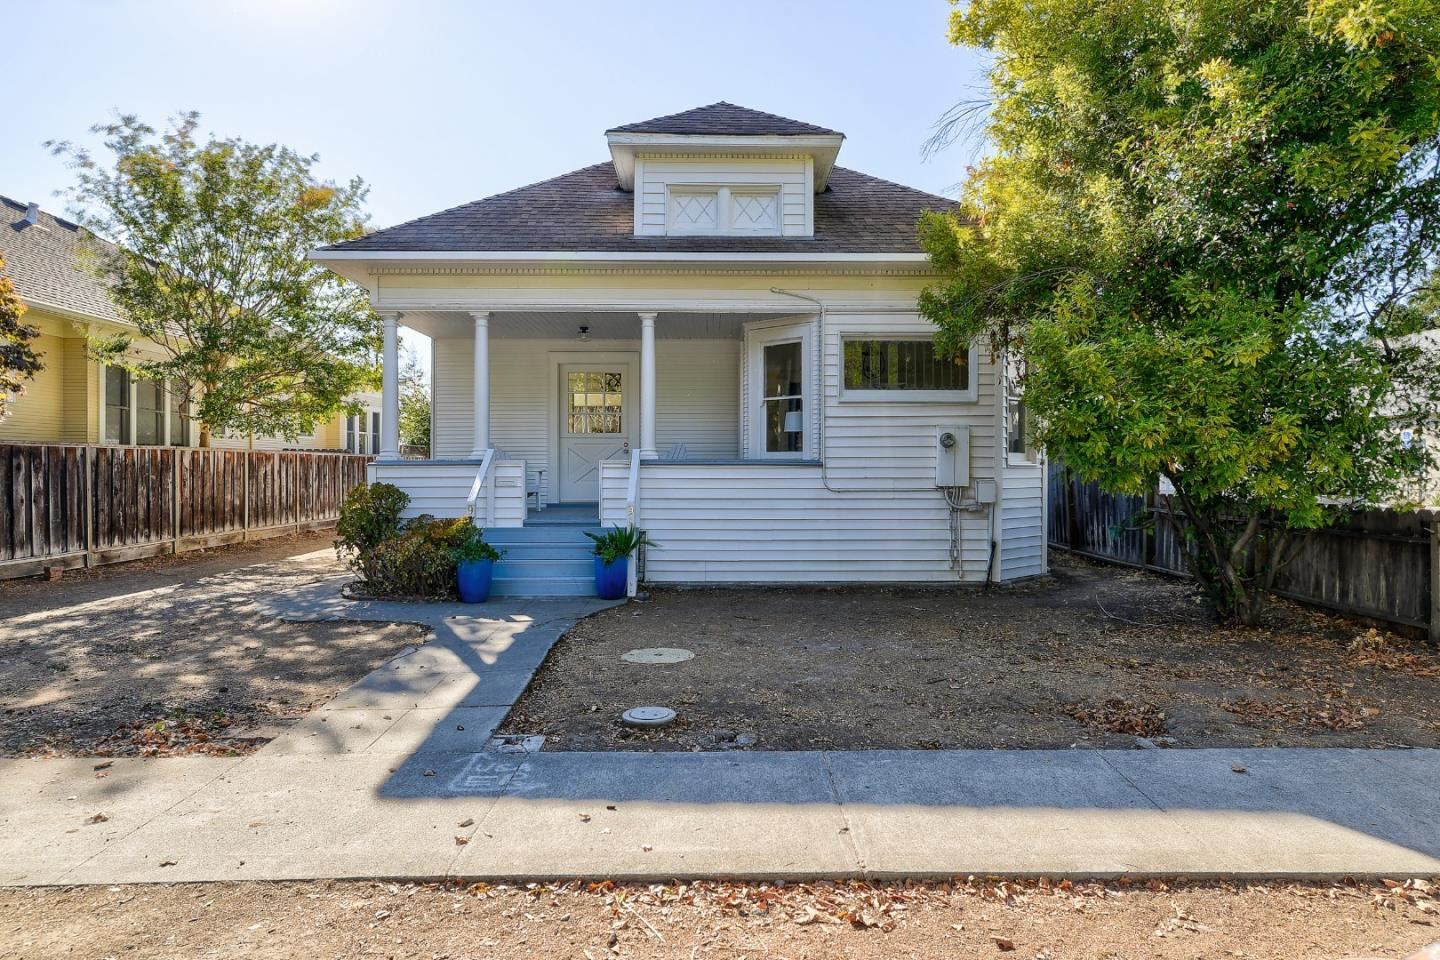 Photo for 91 N 1st ST, CAMPBELL, CA 95008 (MLS # ML81812641)